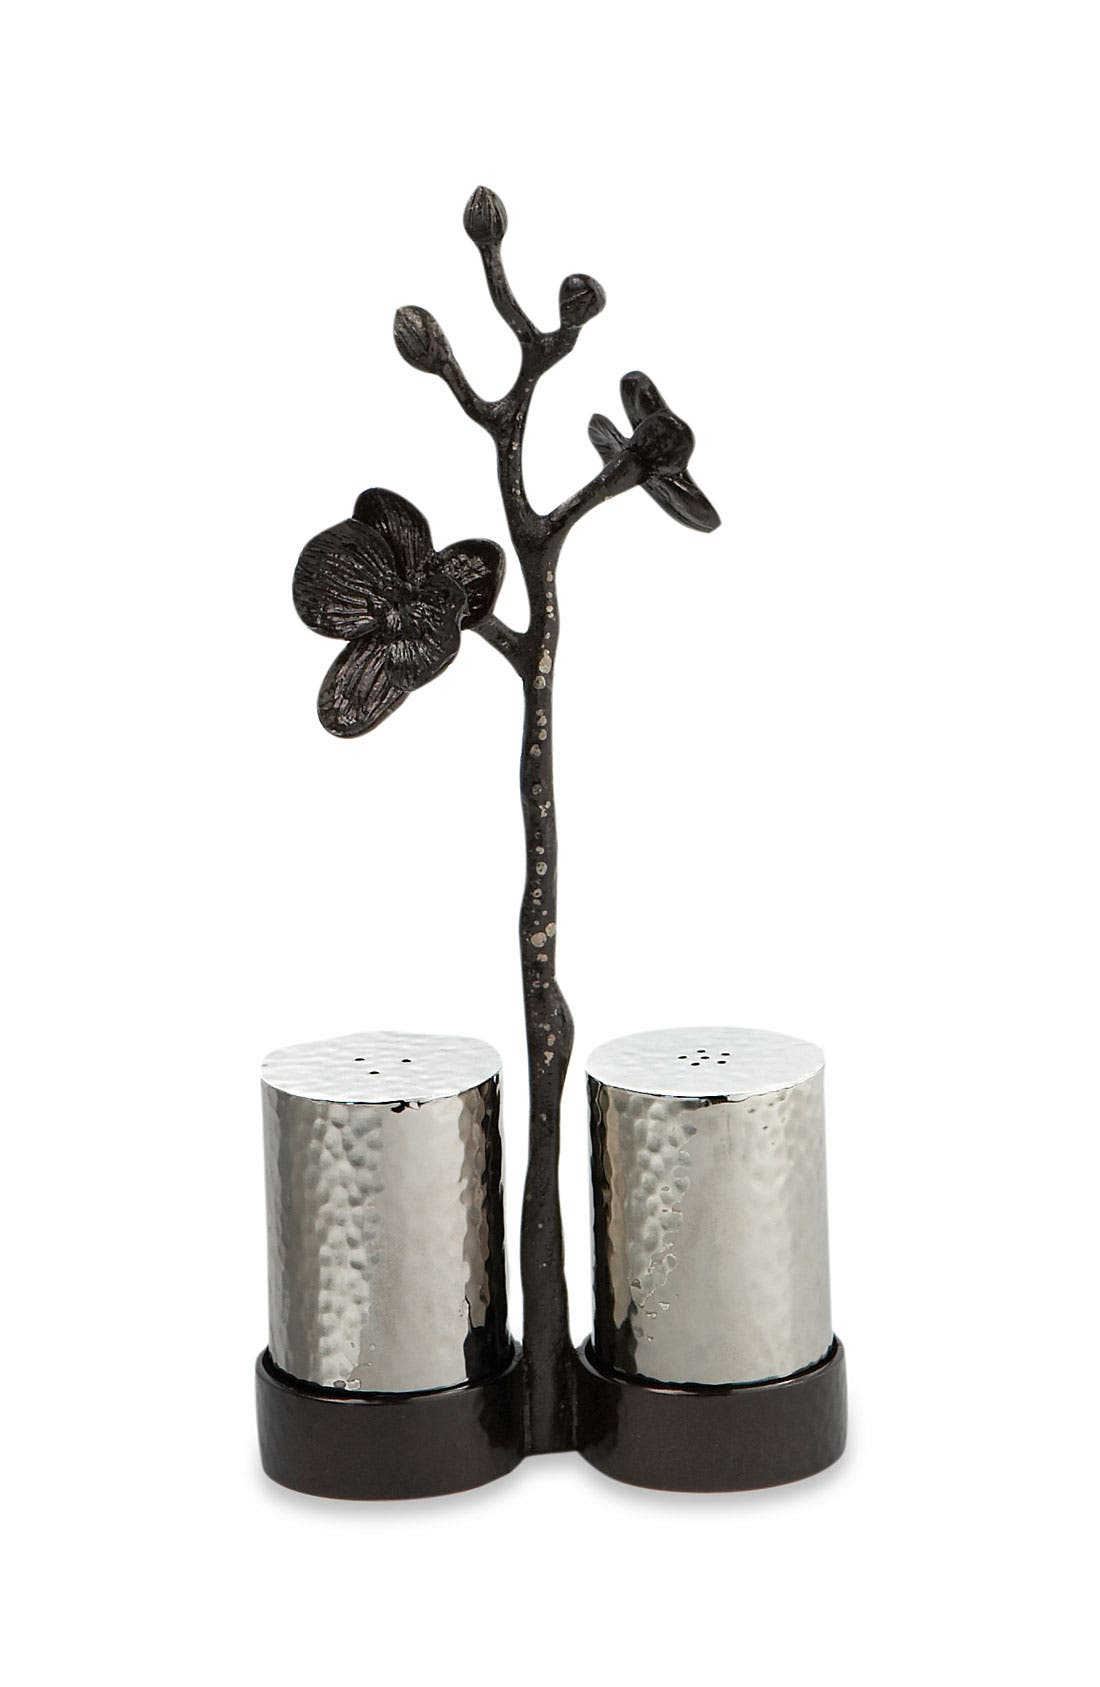 Main Image - Michael Aram 'Black Orchid' Salt & Pepper Shakers